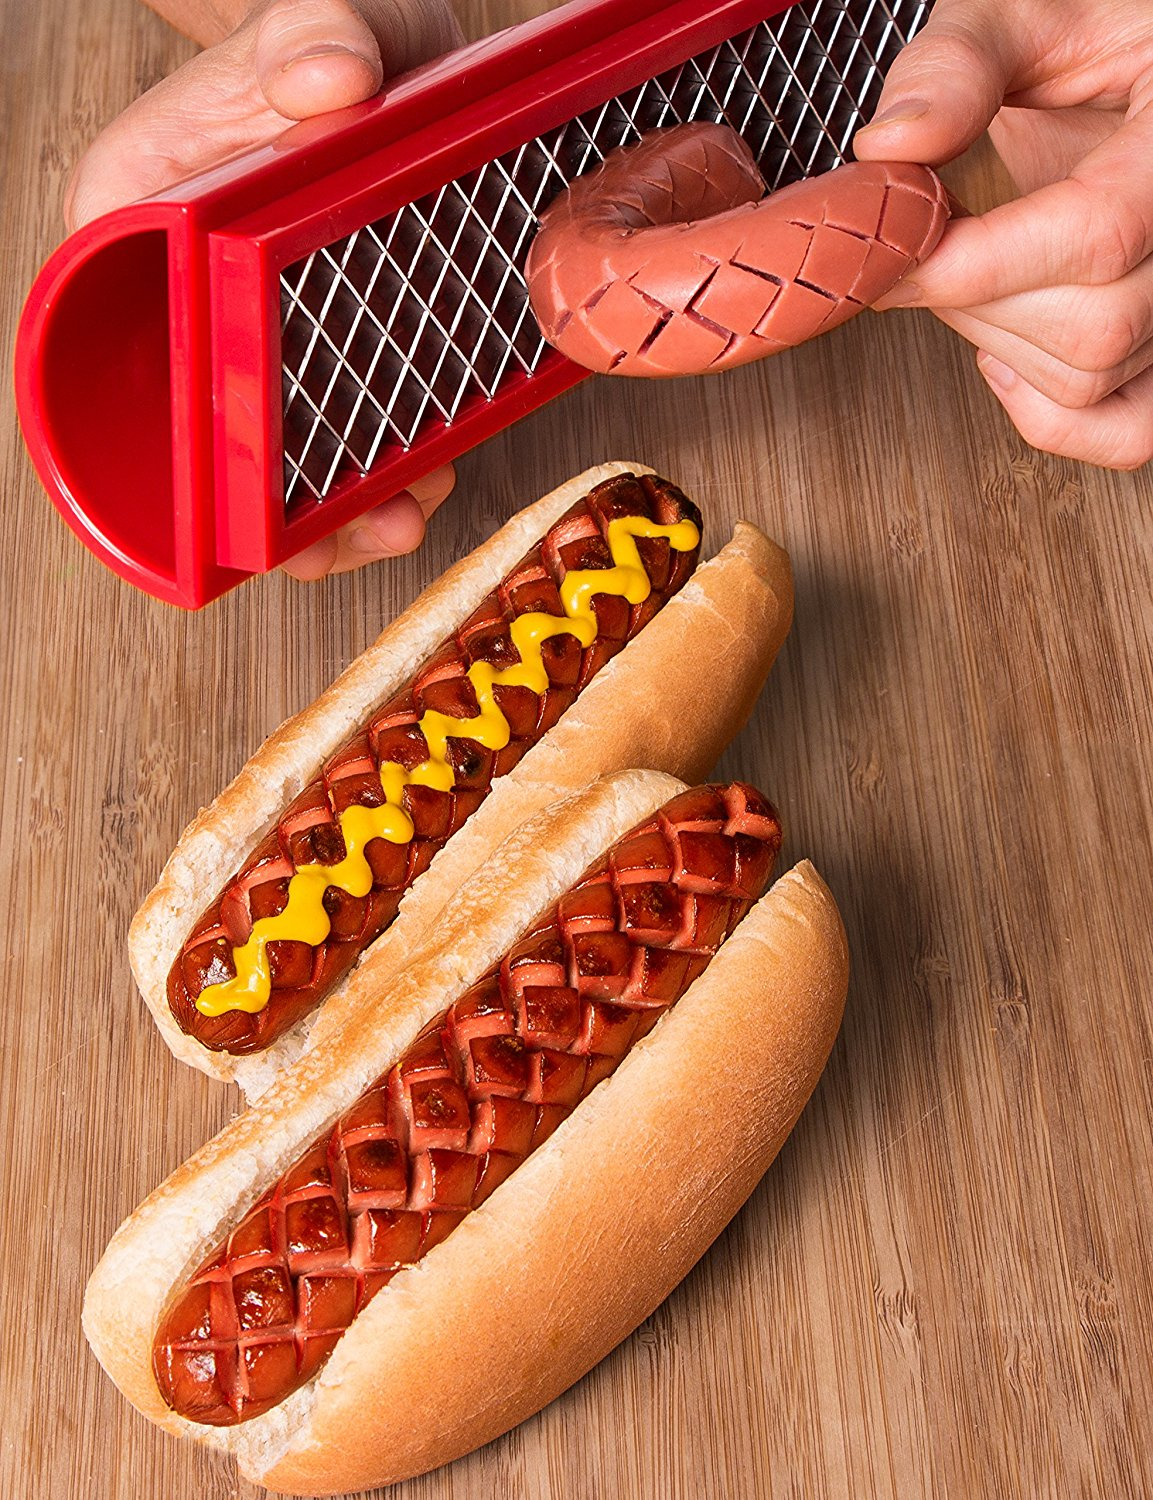 Stadium-style dogs at home! - $